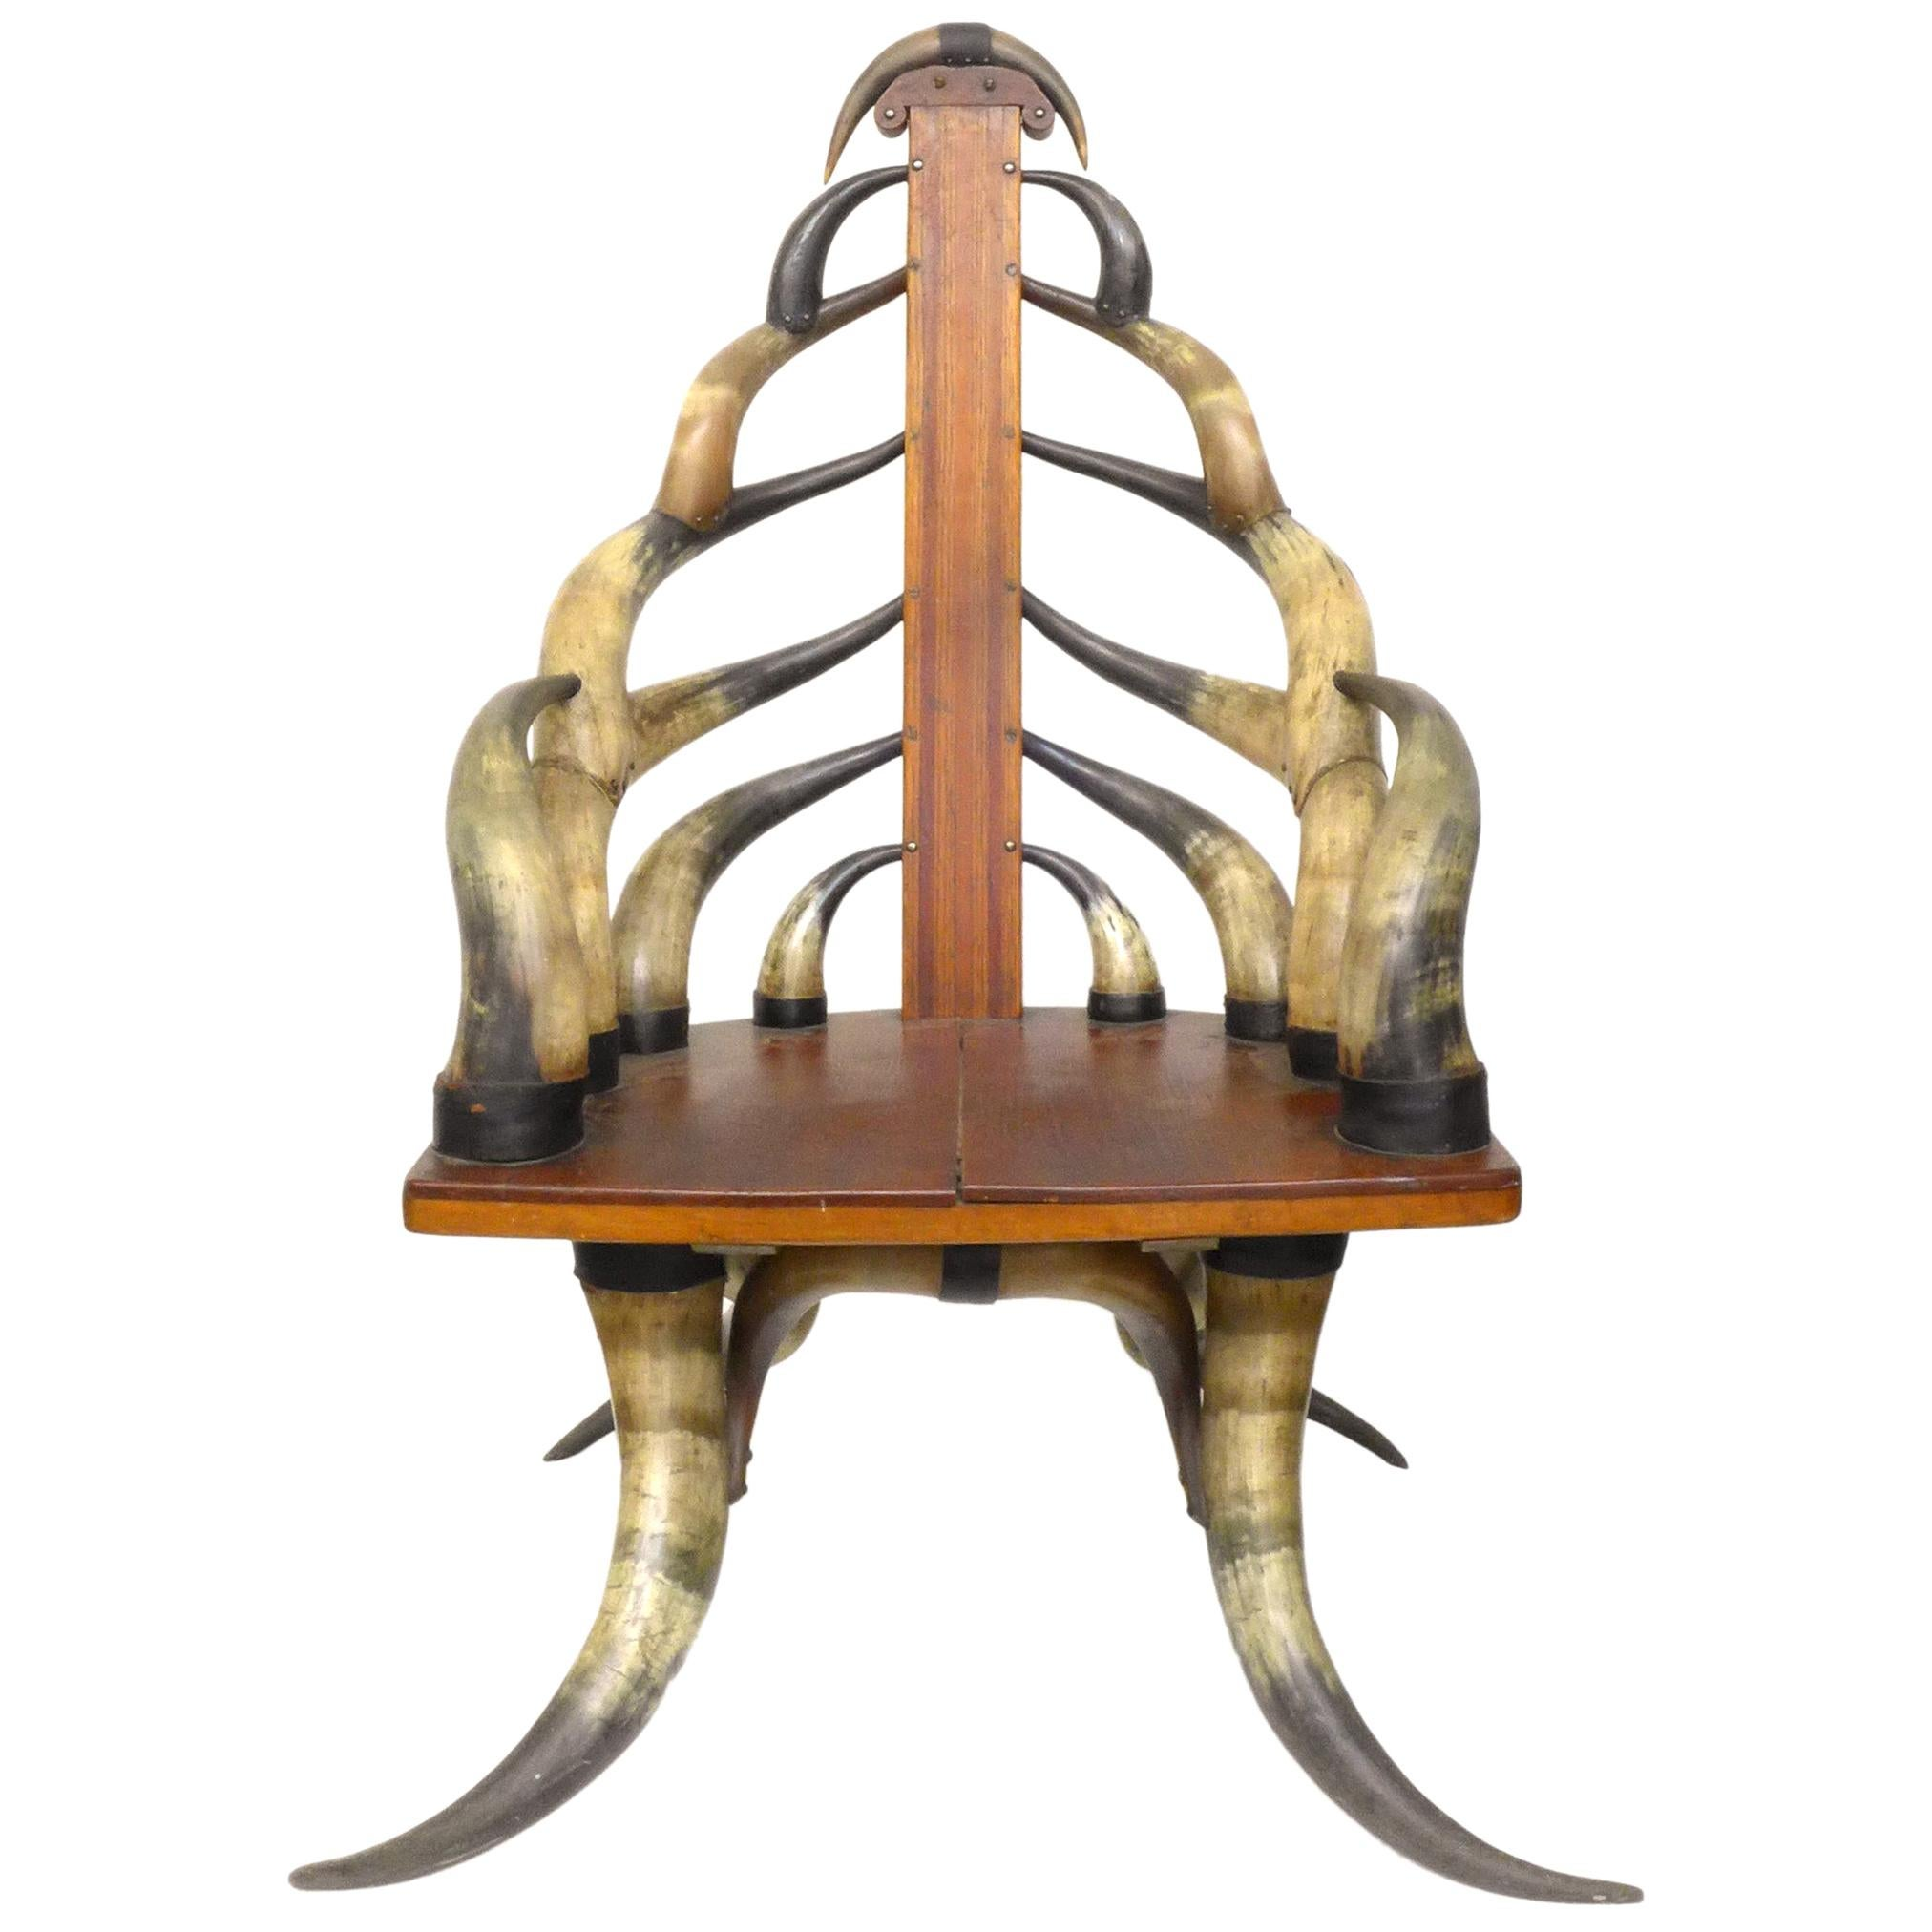 Turn of the Century American Steer Horn Parlor Chair